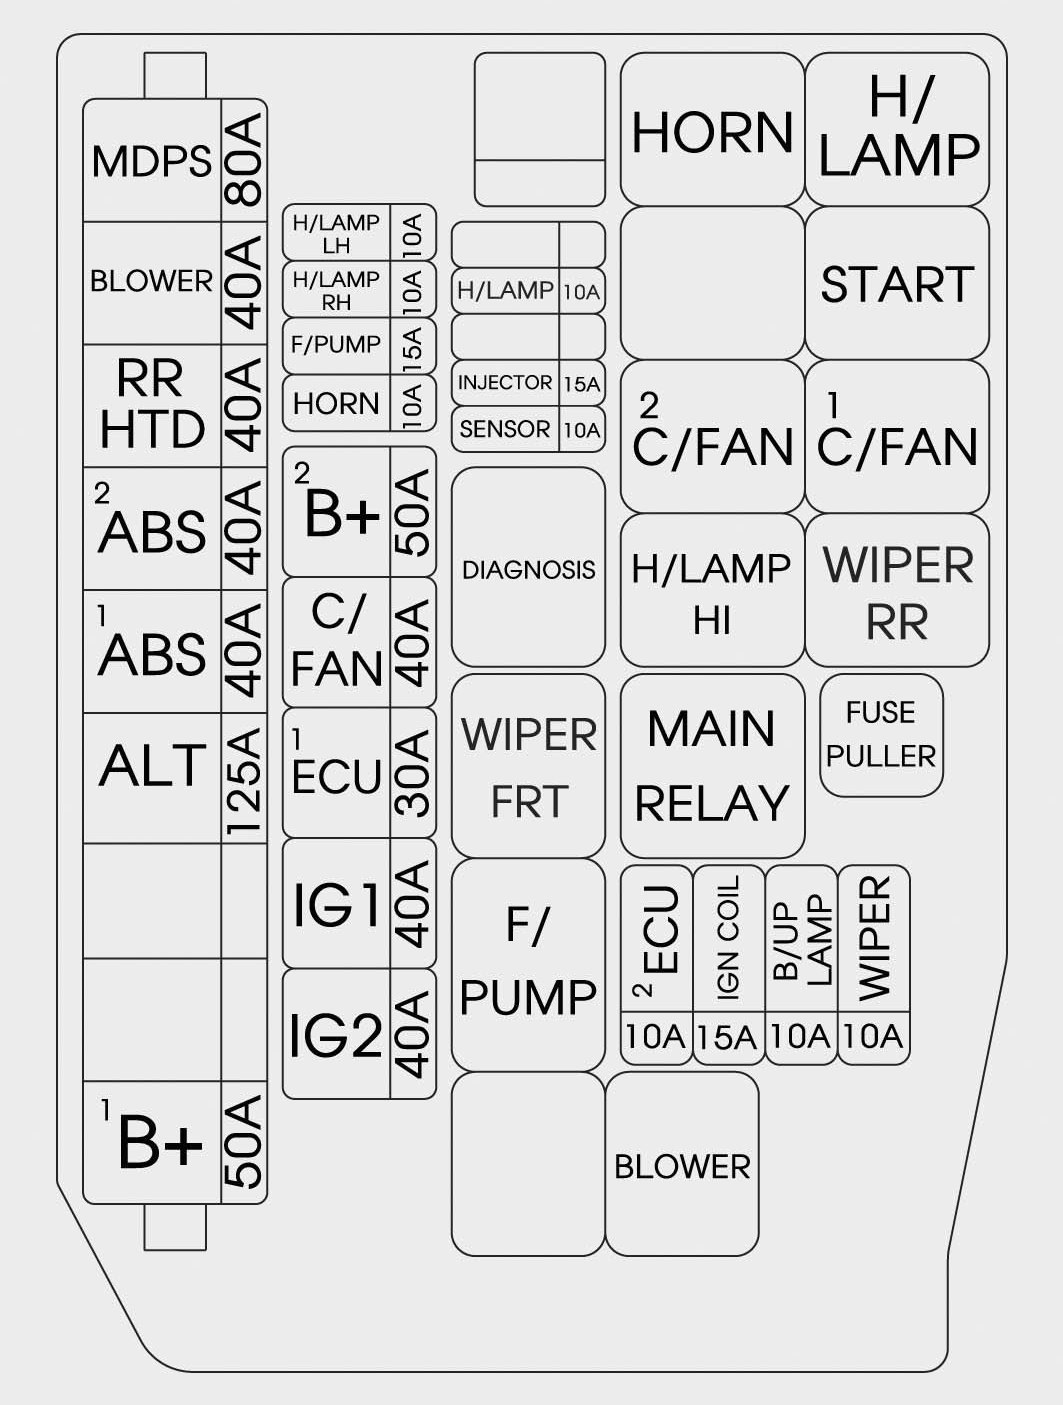 2013 hyundai accent wiring diagrams today diagram database 2013 hyundai accent fuse box diagram 2013 hyundai accent fuse diagram #2